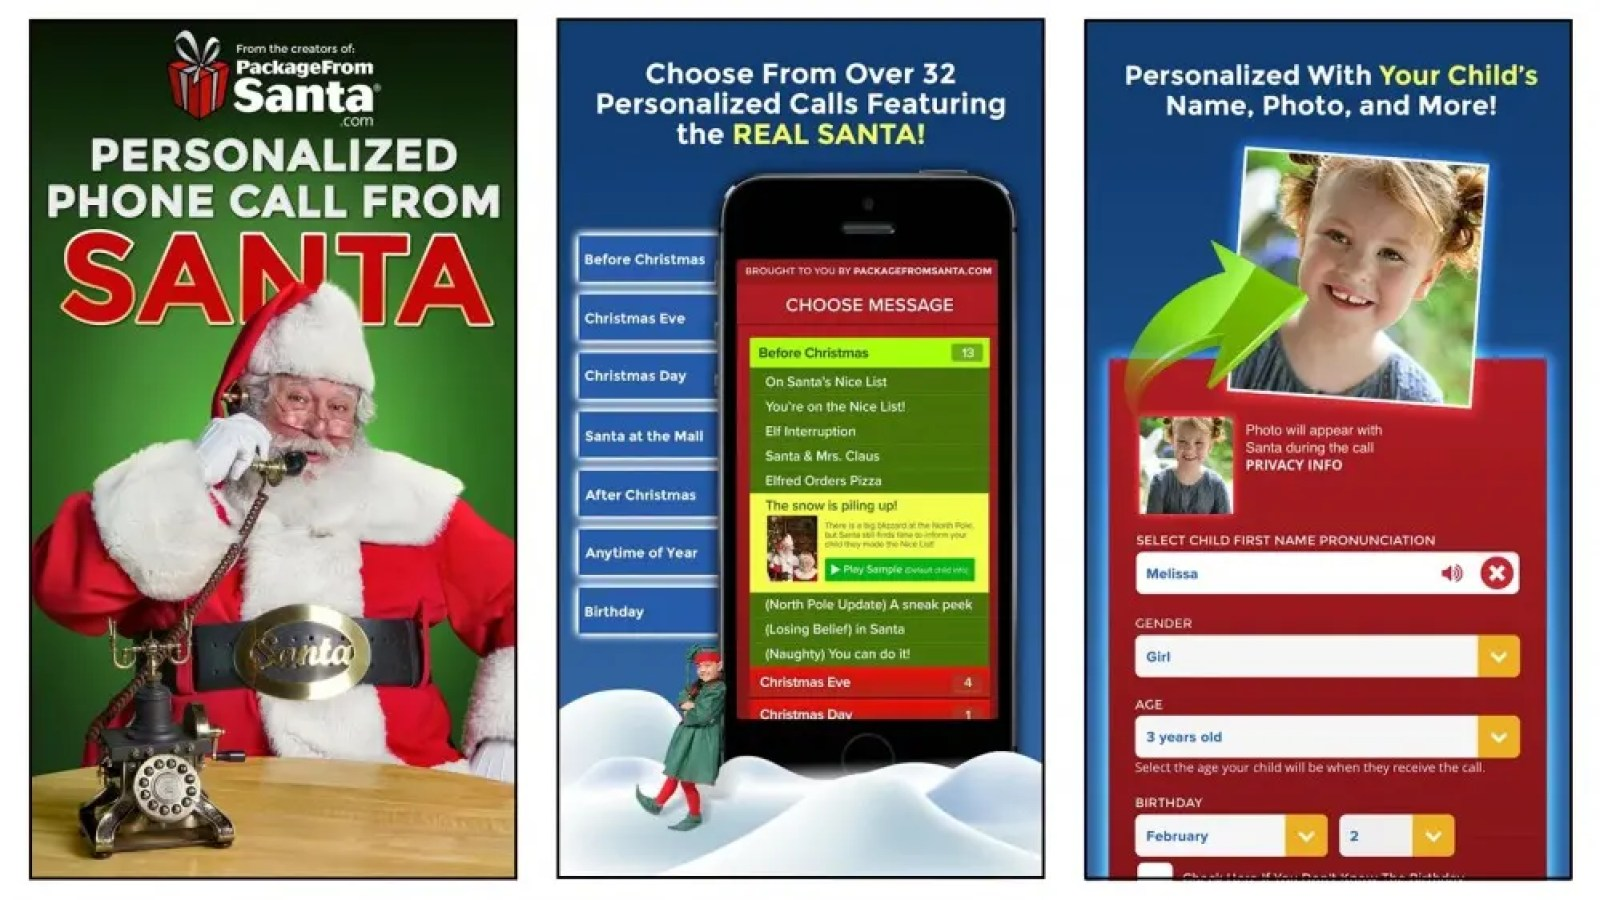 Package from Santa app with phone call personalization options for kids